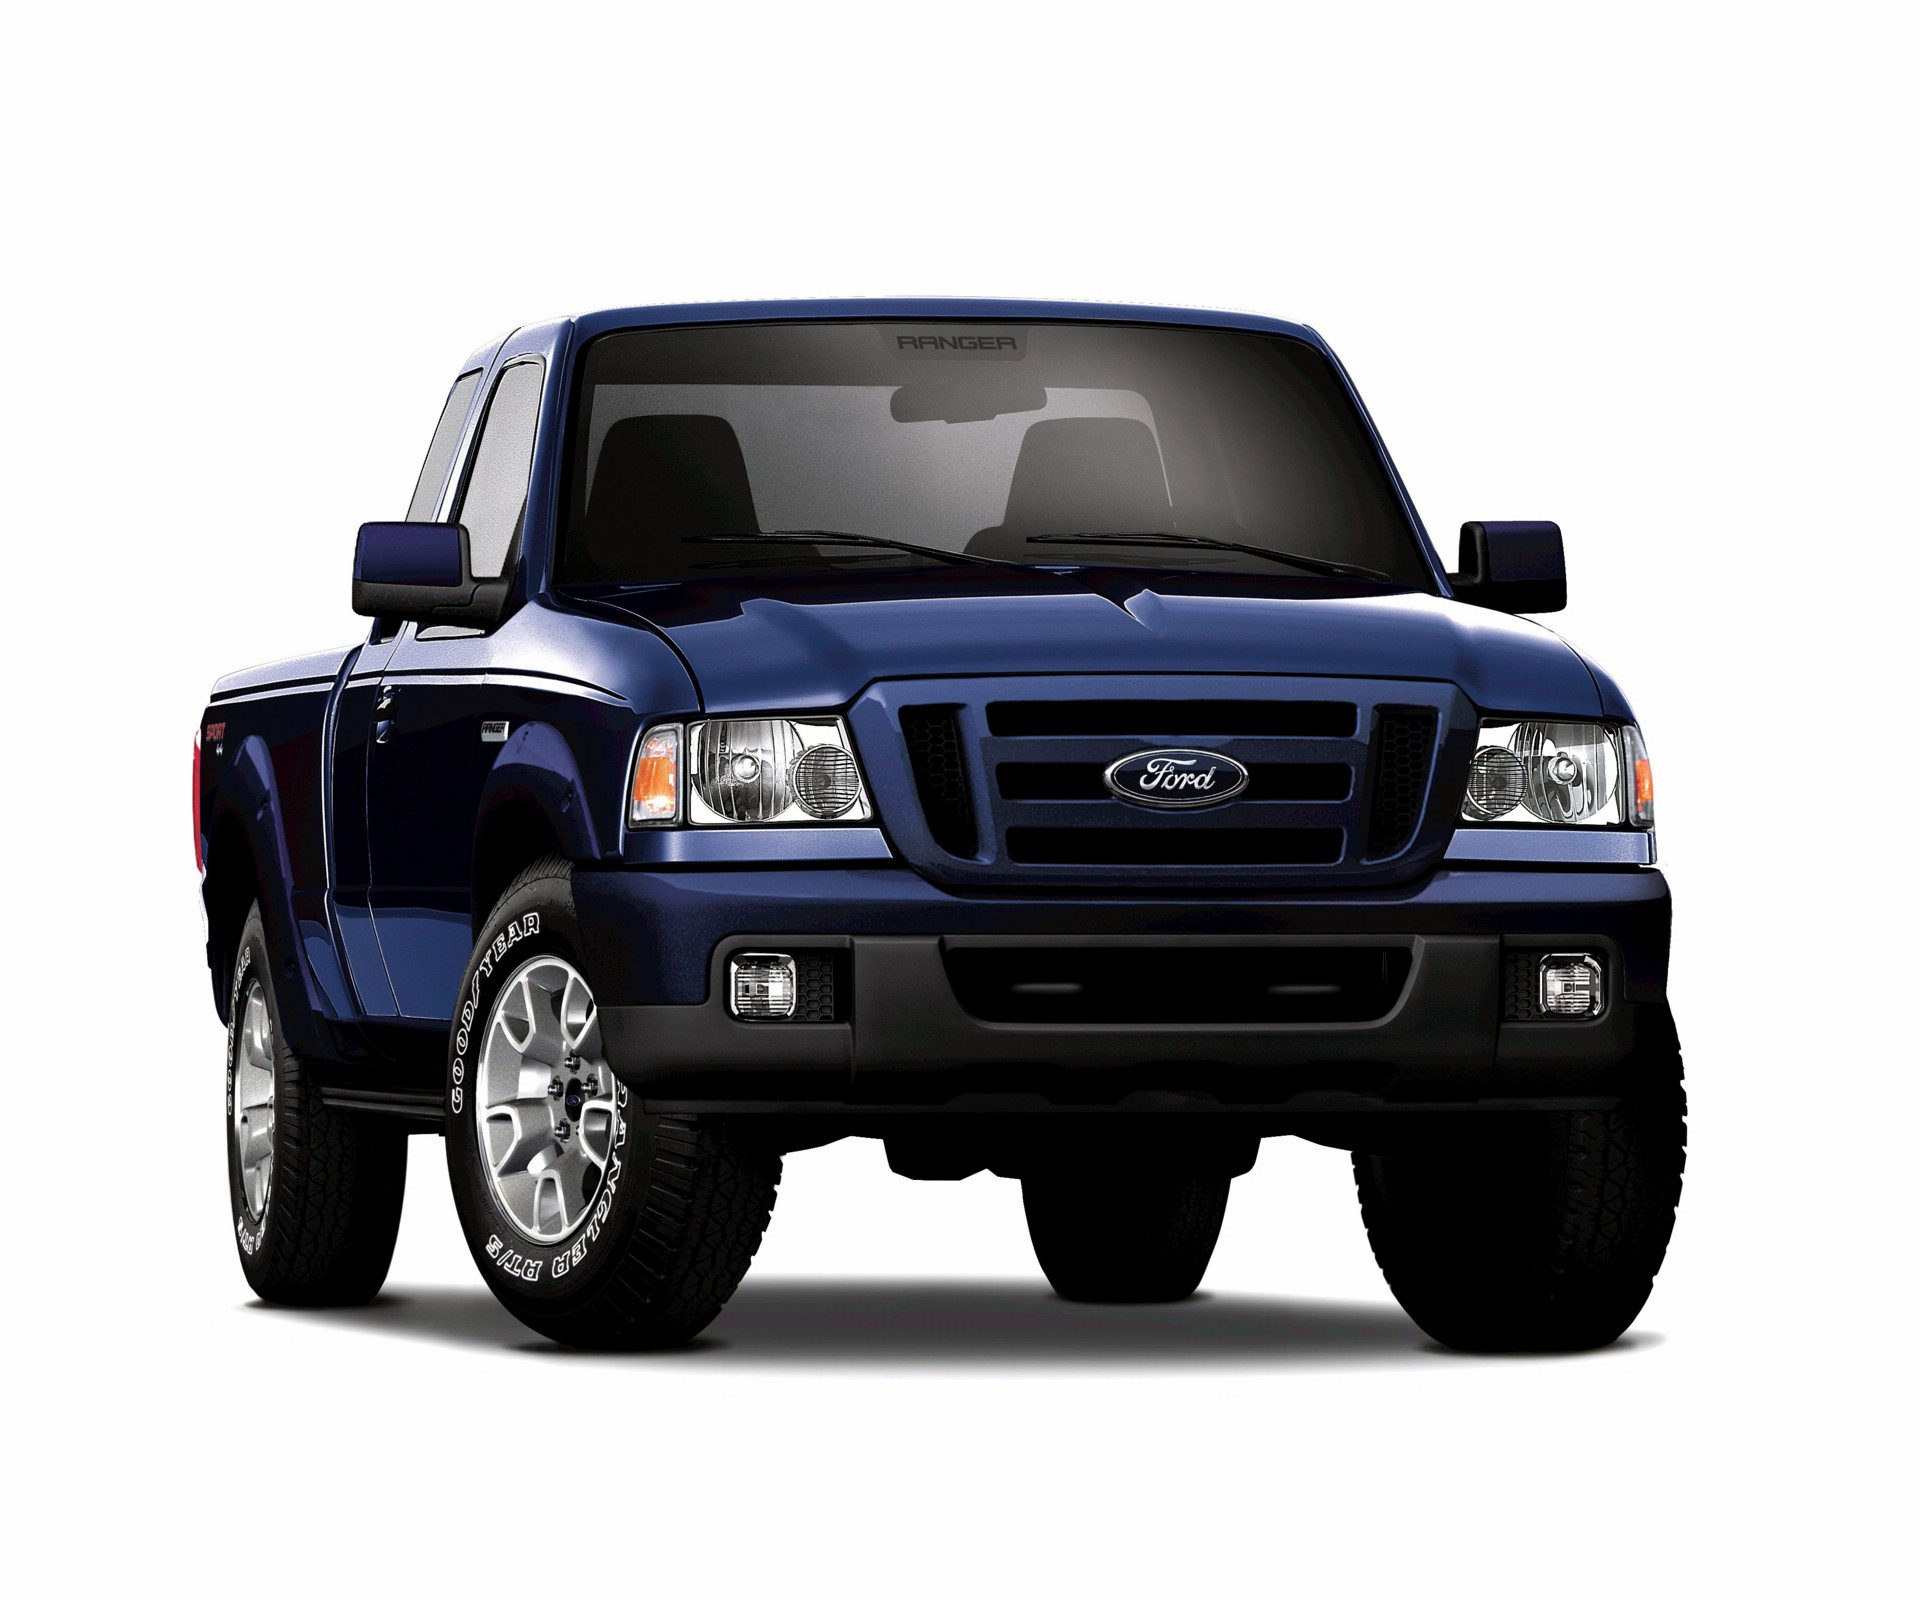 2007 ford ranger technical specifications and data engine dimensions and mechanical details. Black Bedroom Furniture Sets. Home Design Ideas